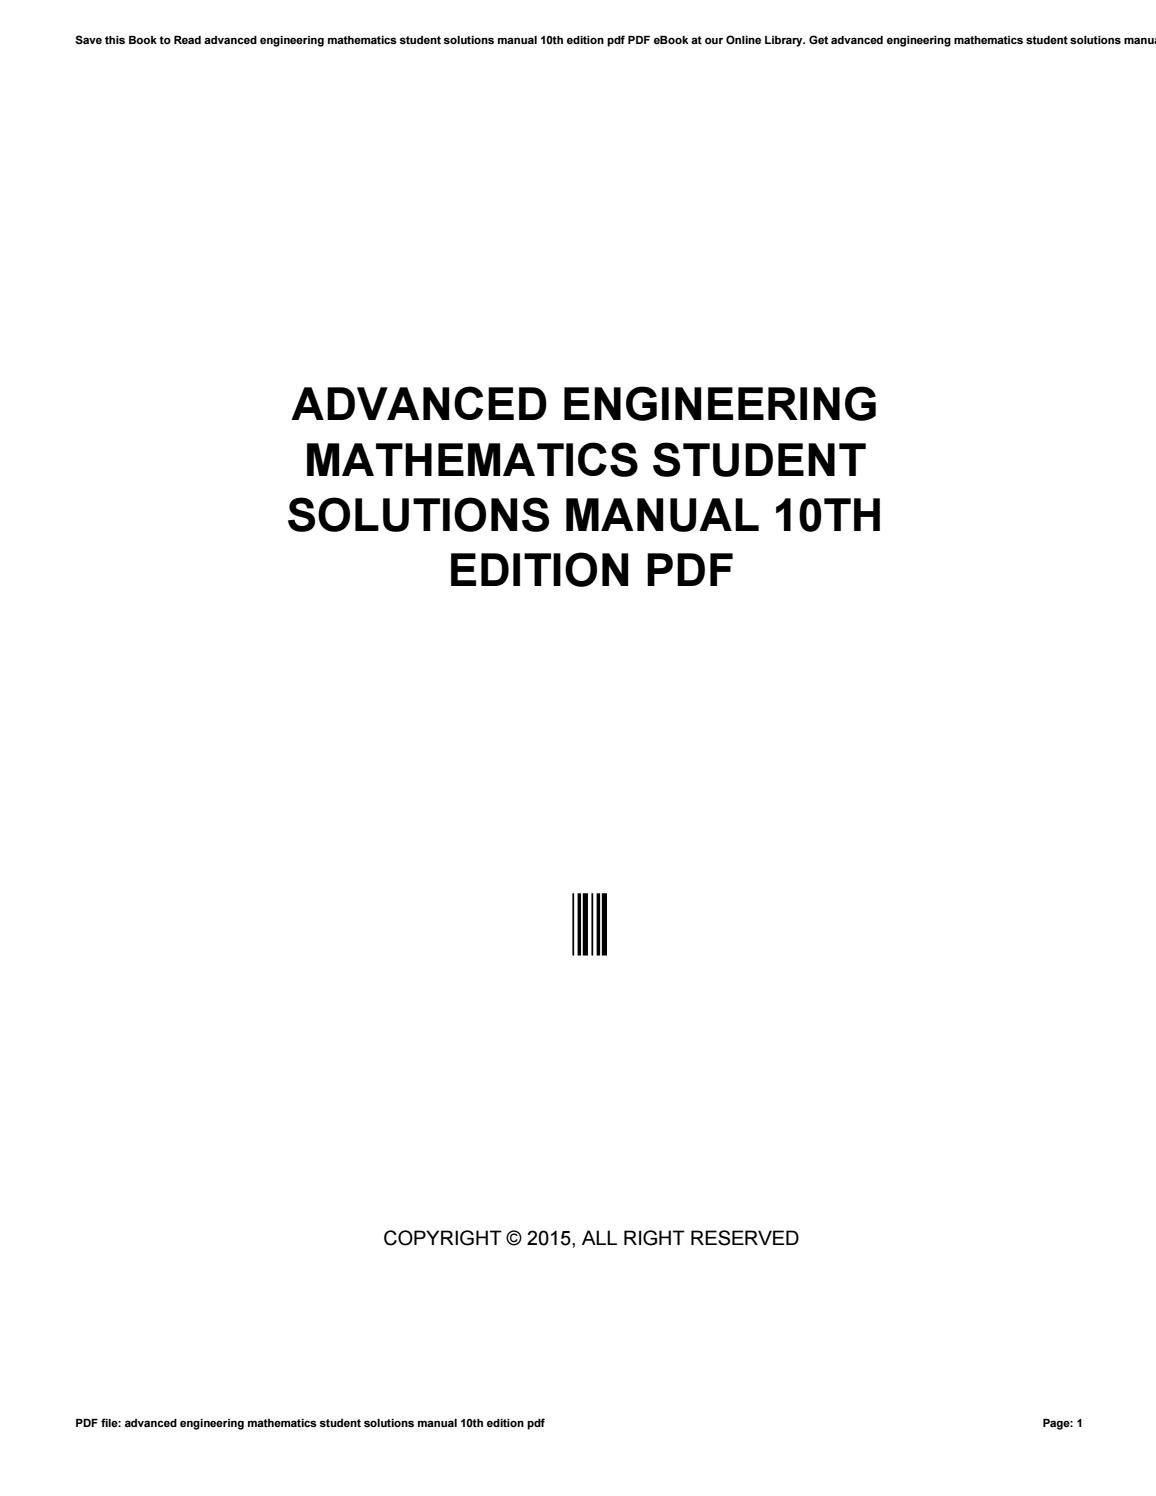 Advanced engineering mathematics student solutions manual 10th edition pdf  by morriesworld - issuu